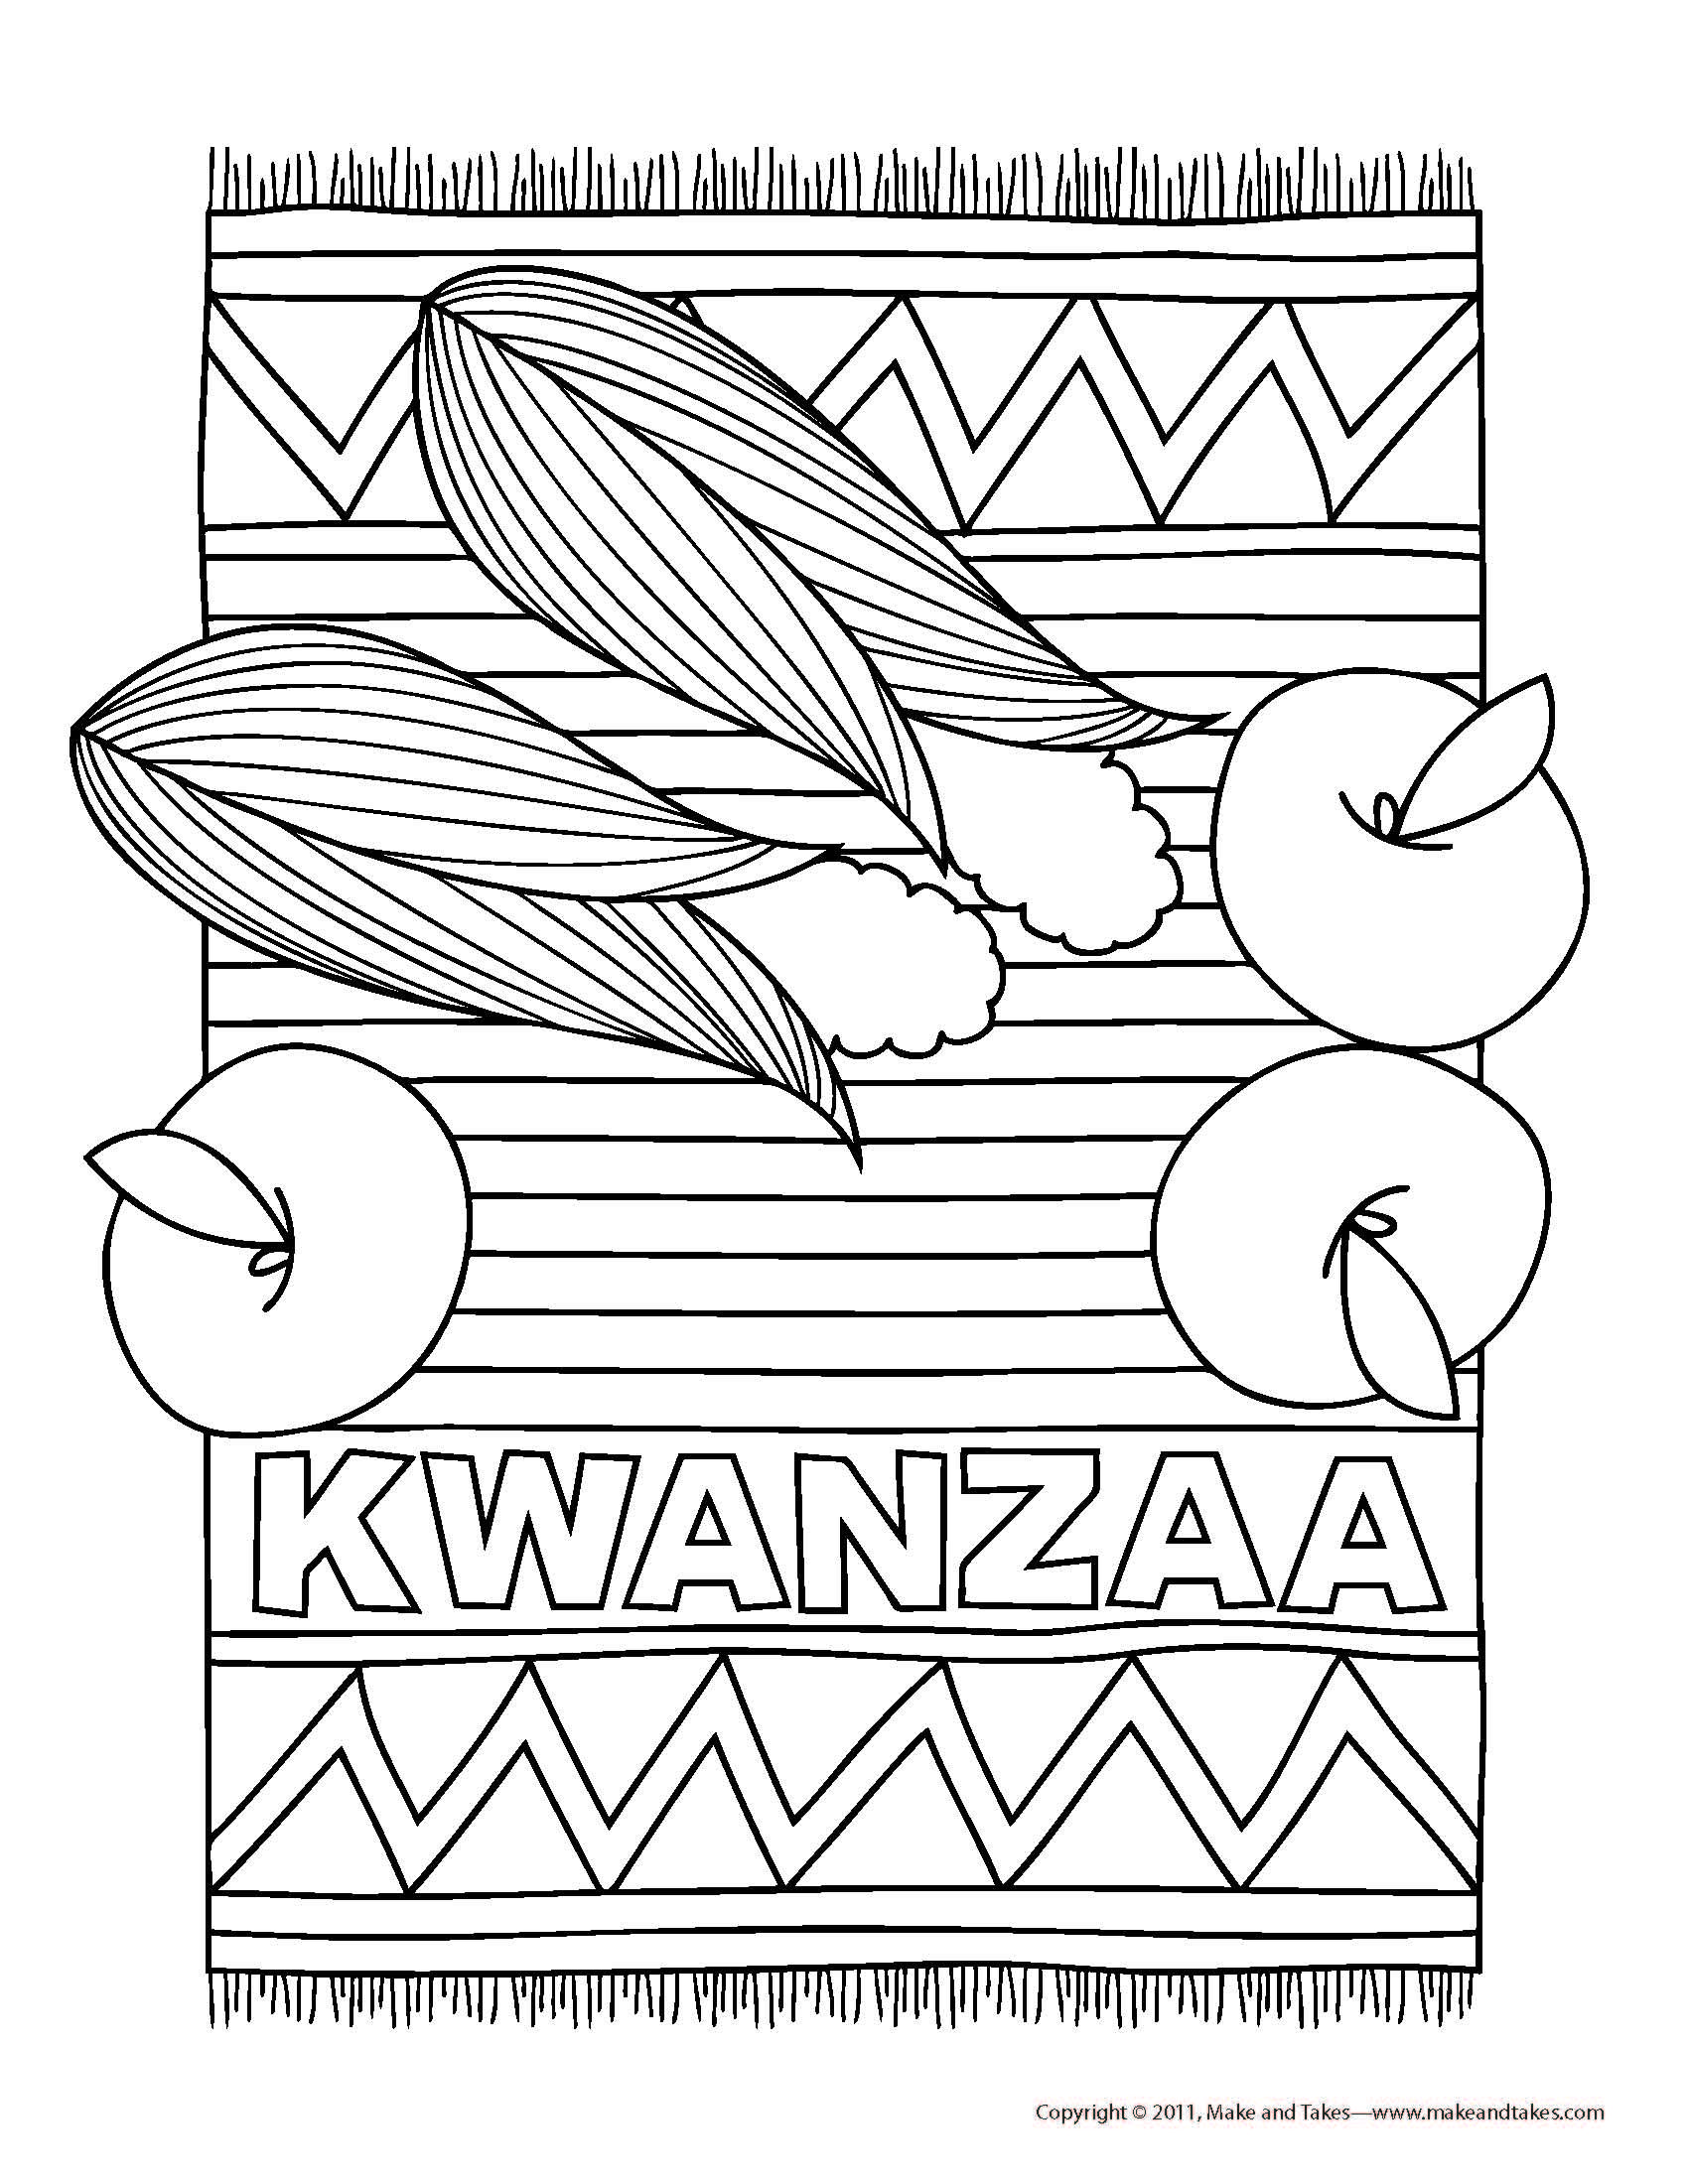 Kwanzaa colouring page. Find more information about Kwanzaa at Fun ...